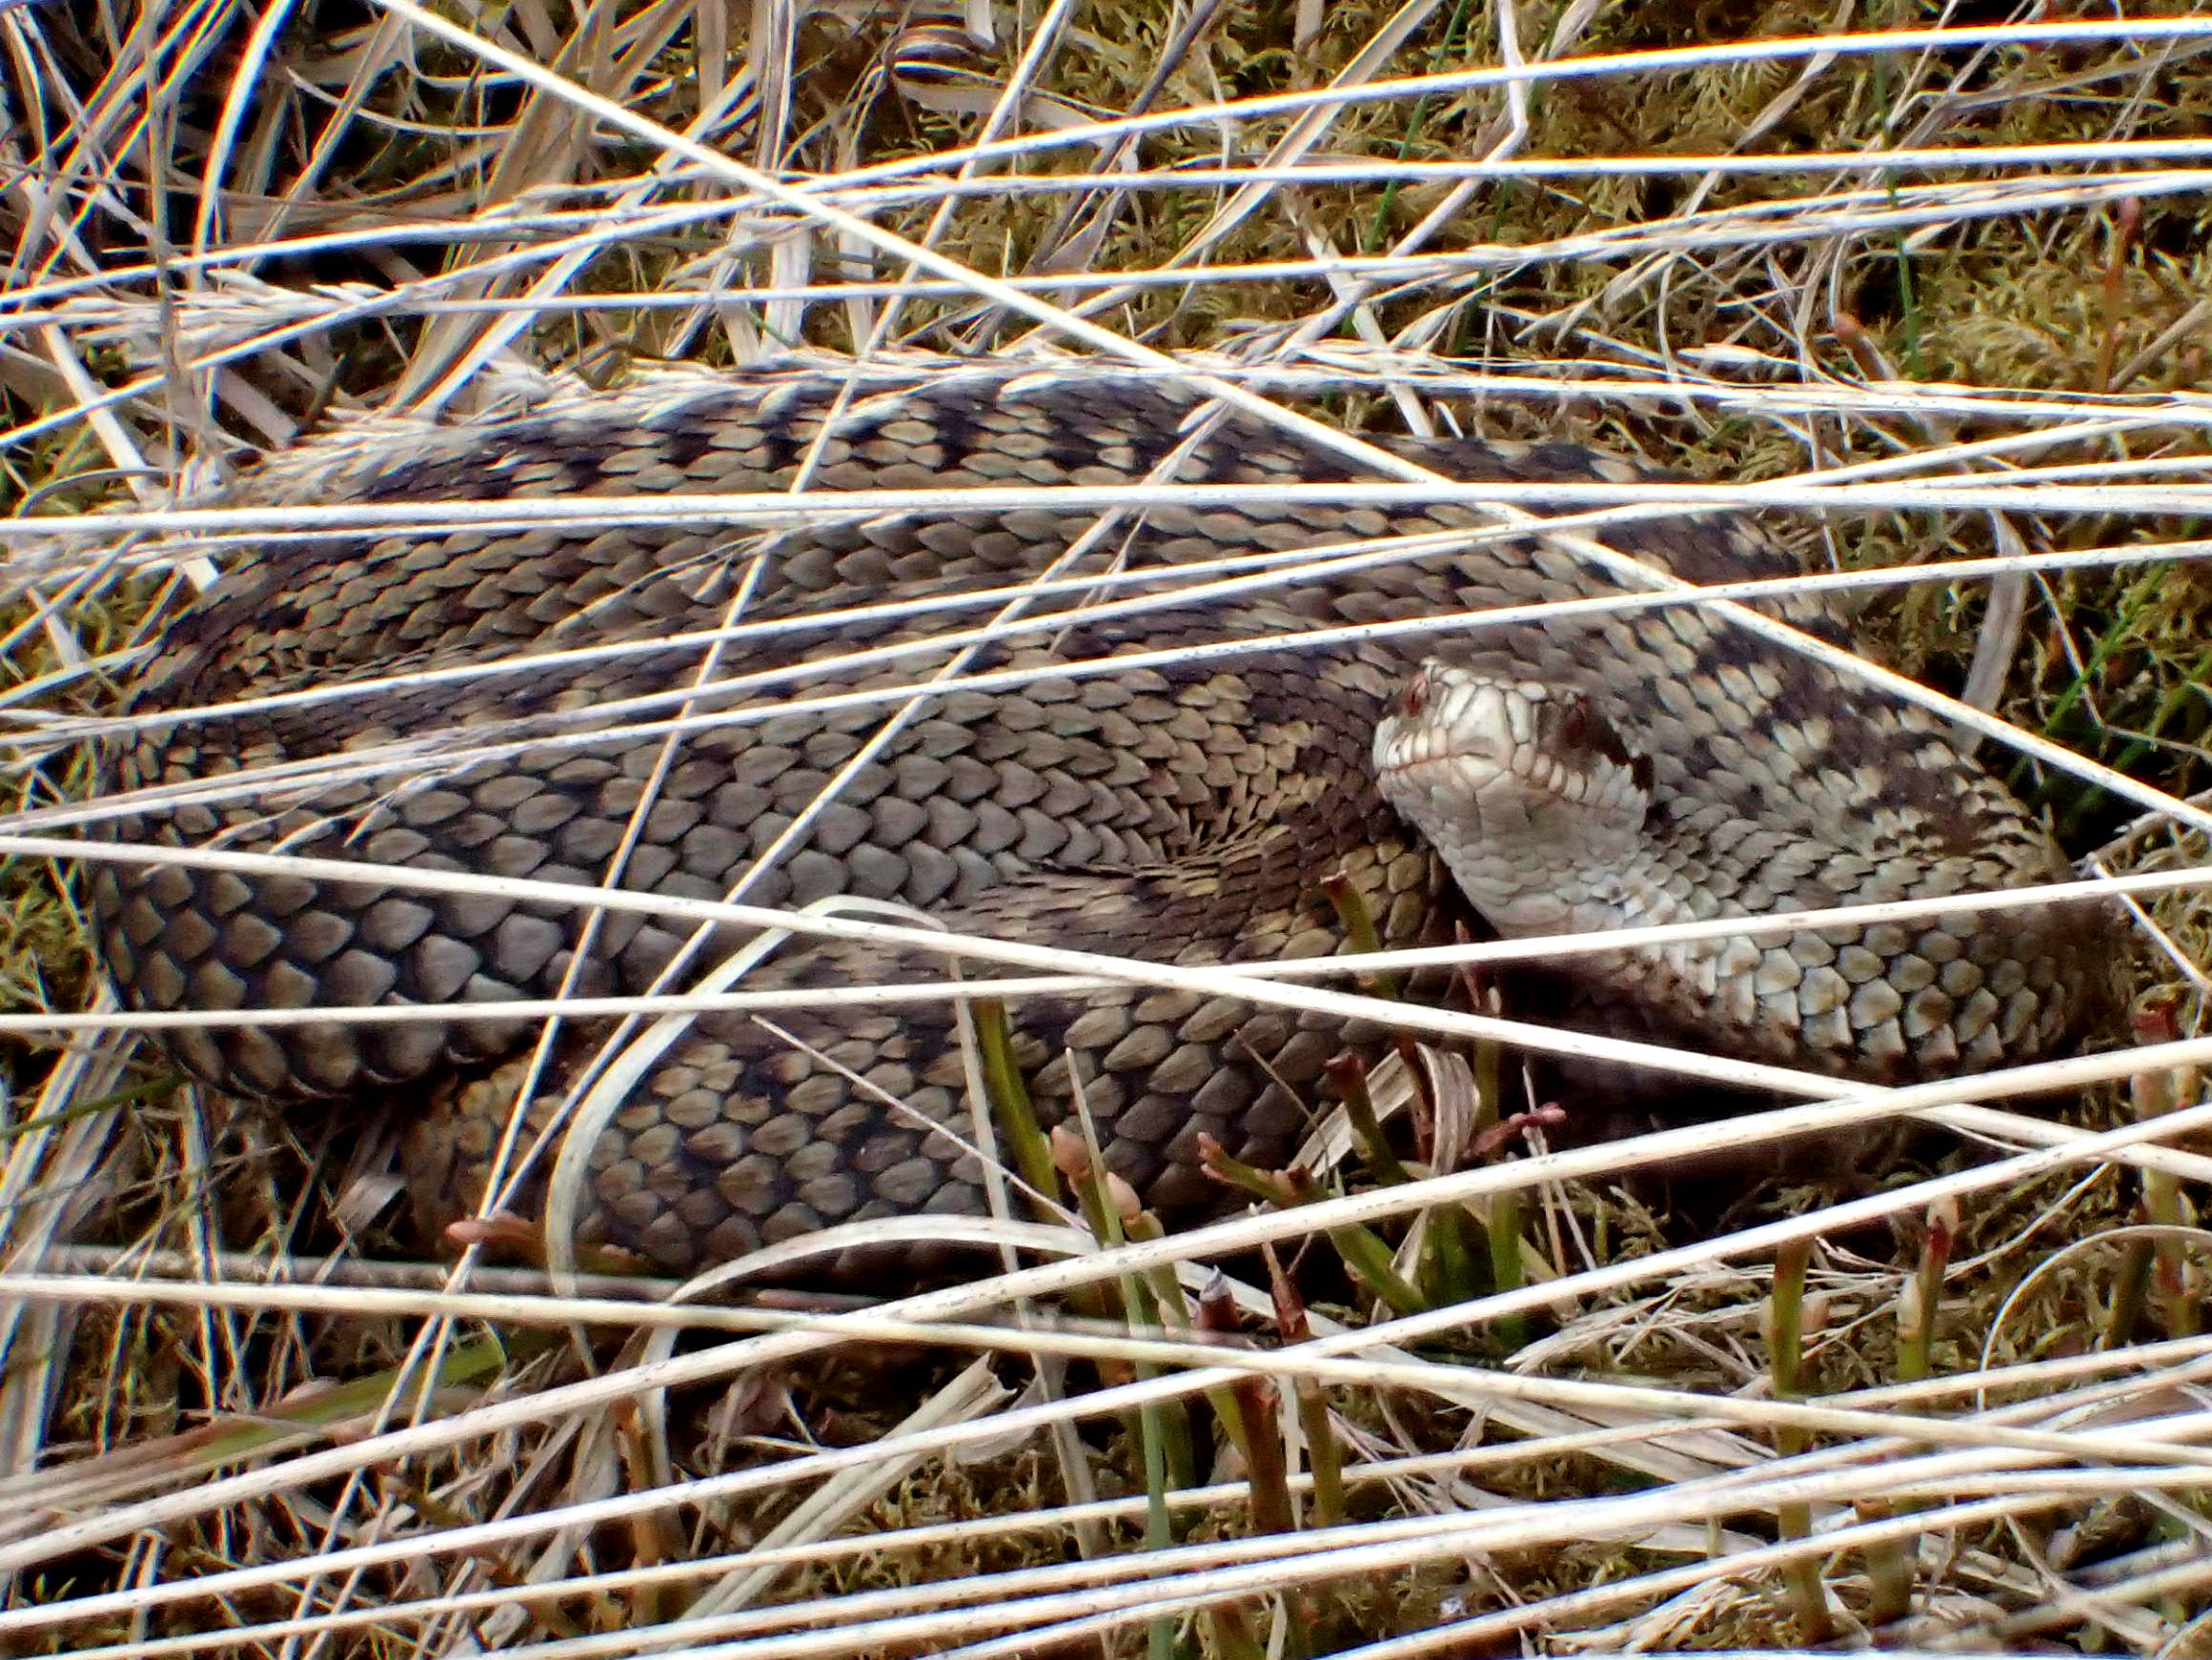 Reptile Survey and Mitigation Guidance for Peatland Habitats Published!